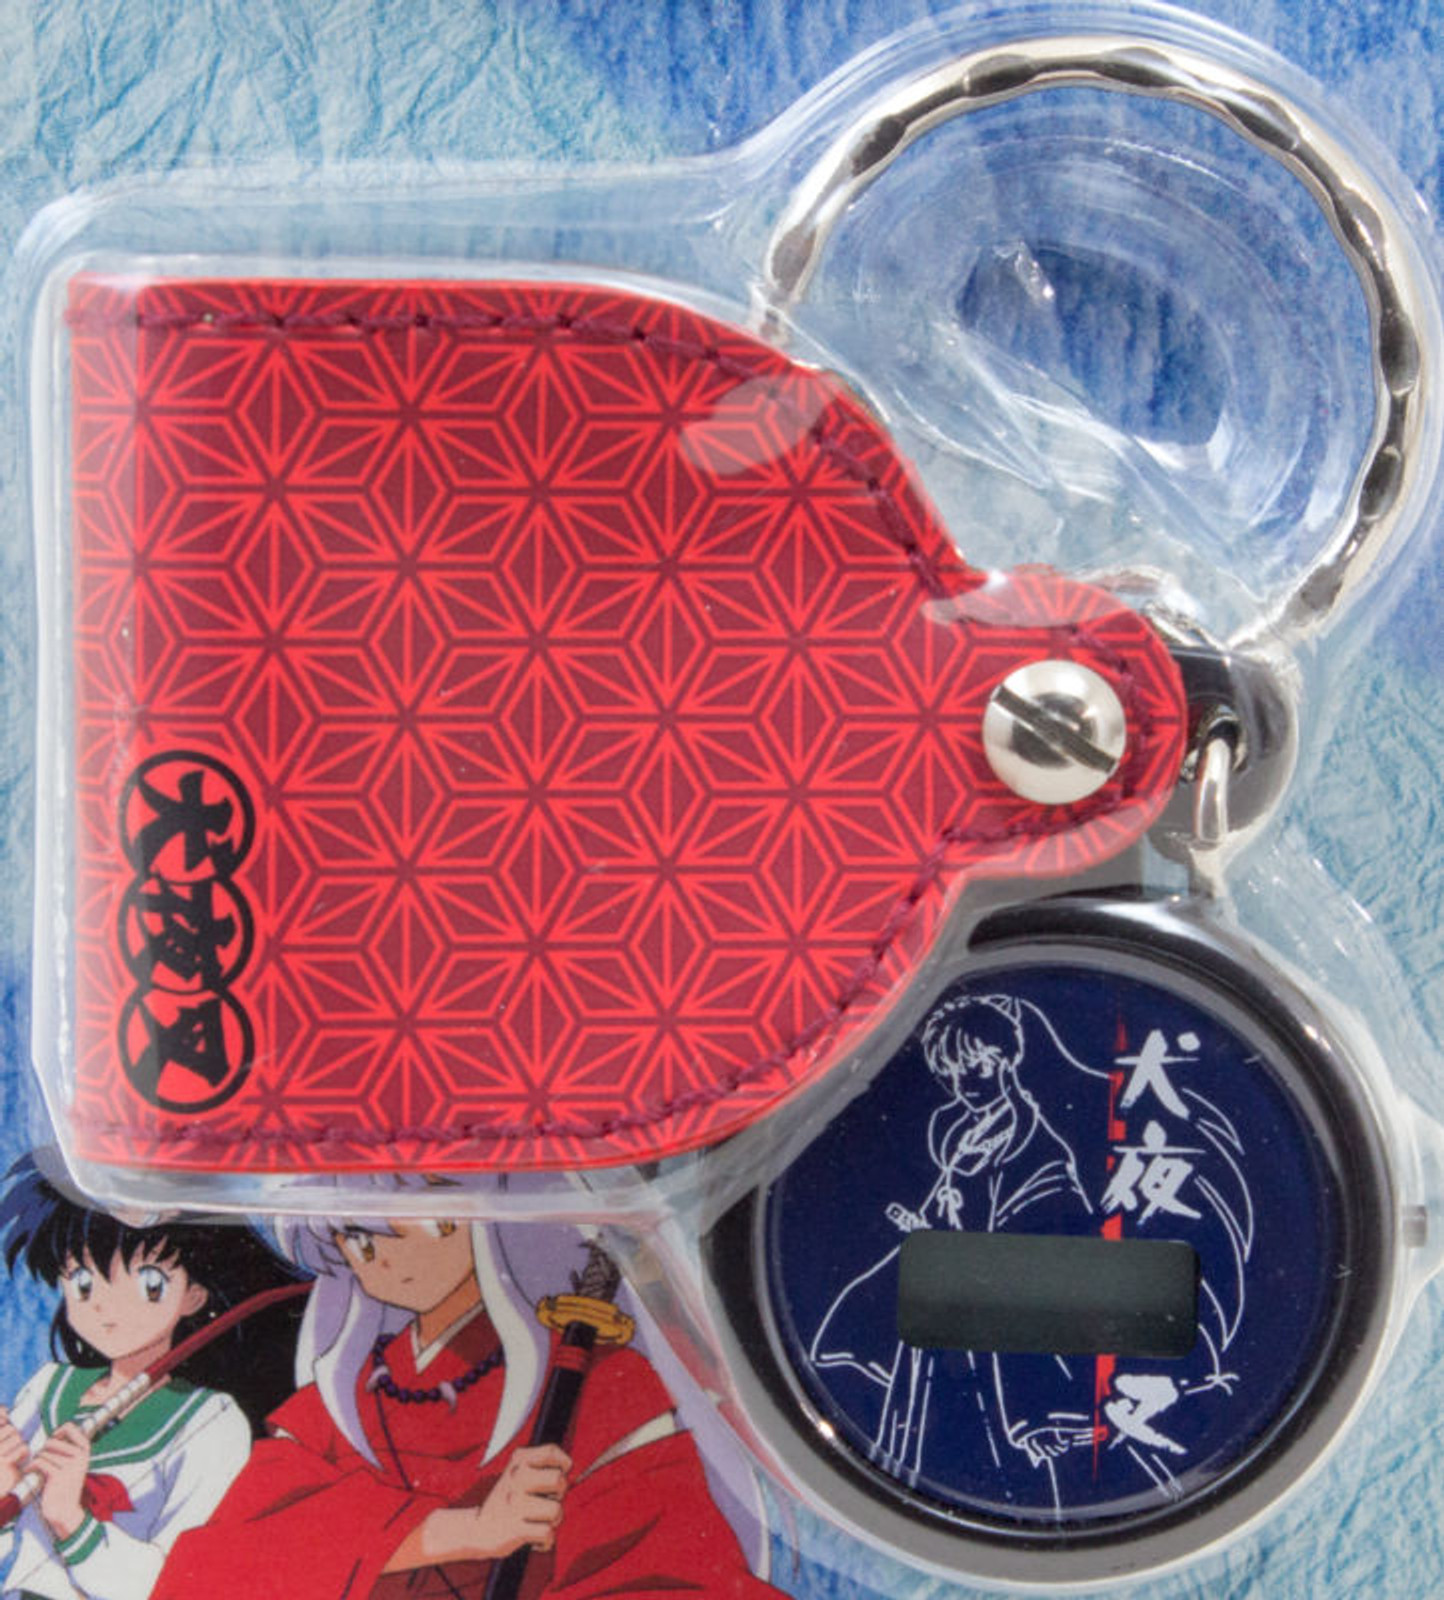 InuYasha Pocket Digital Watch Keychain Banpresto JAPAN ANIME MANGA RUMIKO